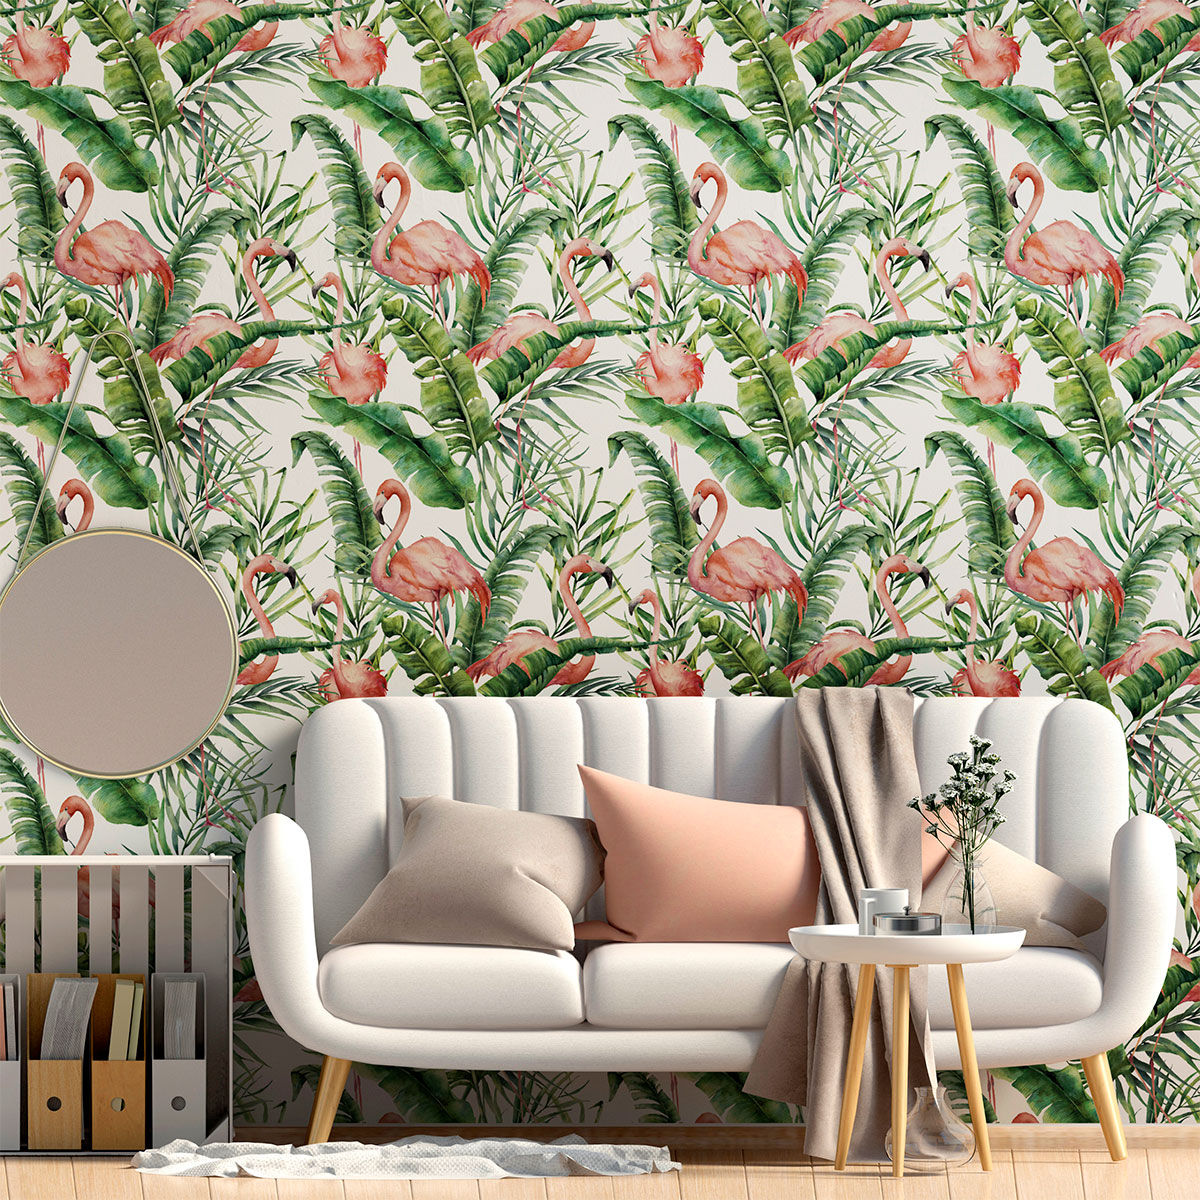 sticker papier peint tropical lima salon design ambiance sticker. Black Bedroom Furniture Sets. Home Design Ideas